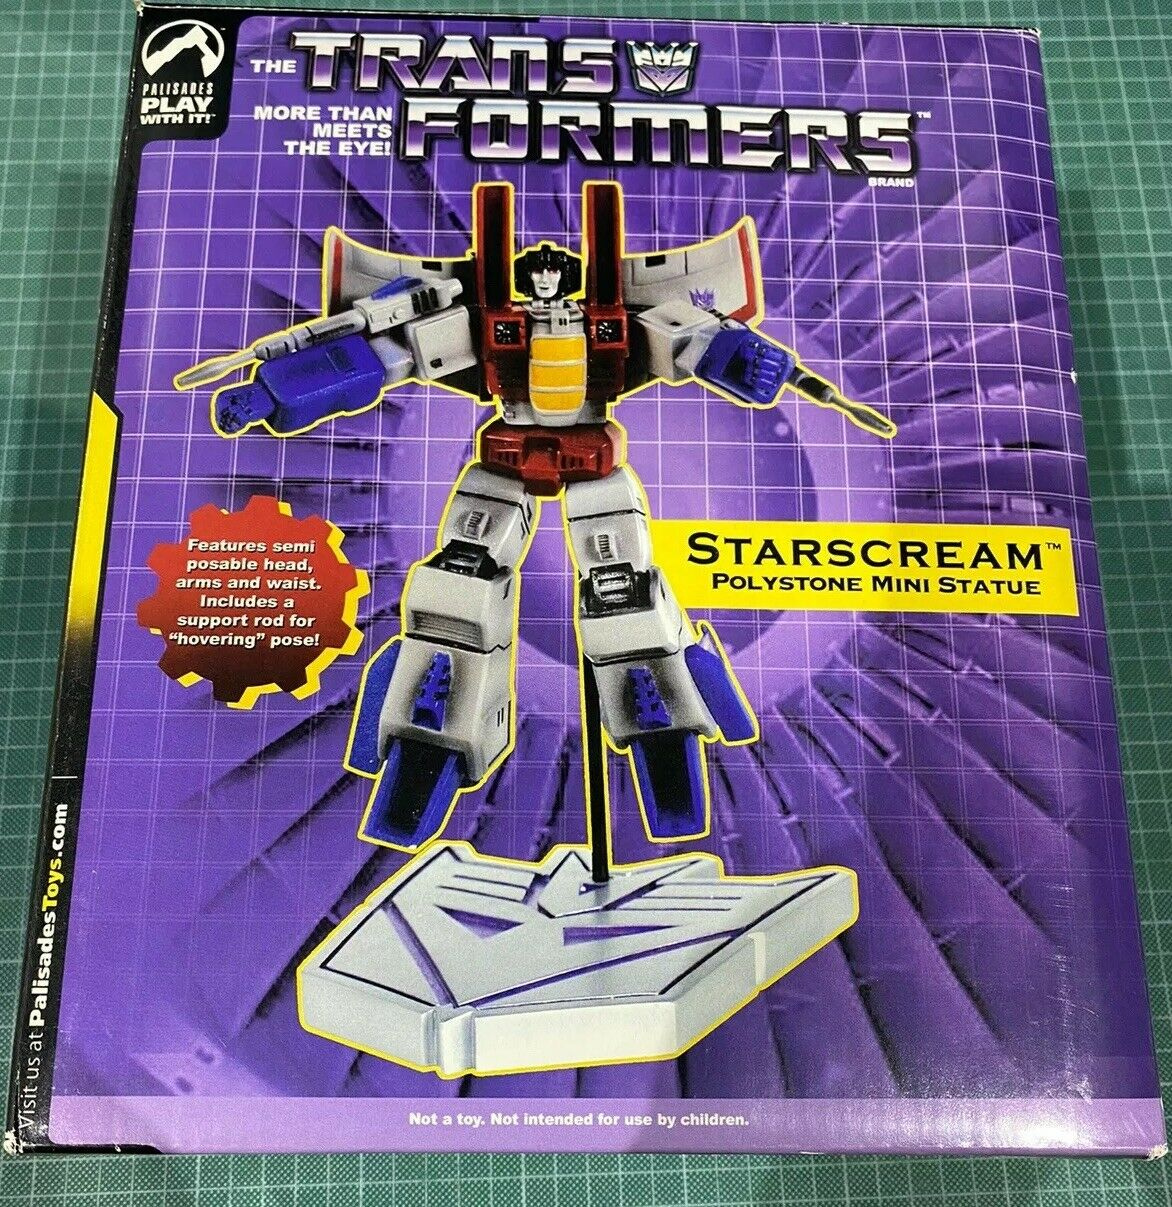 Palisade Toys Transformers StarScream Statue 187 Of 1500 Ltd Ed.